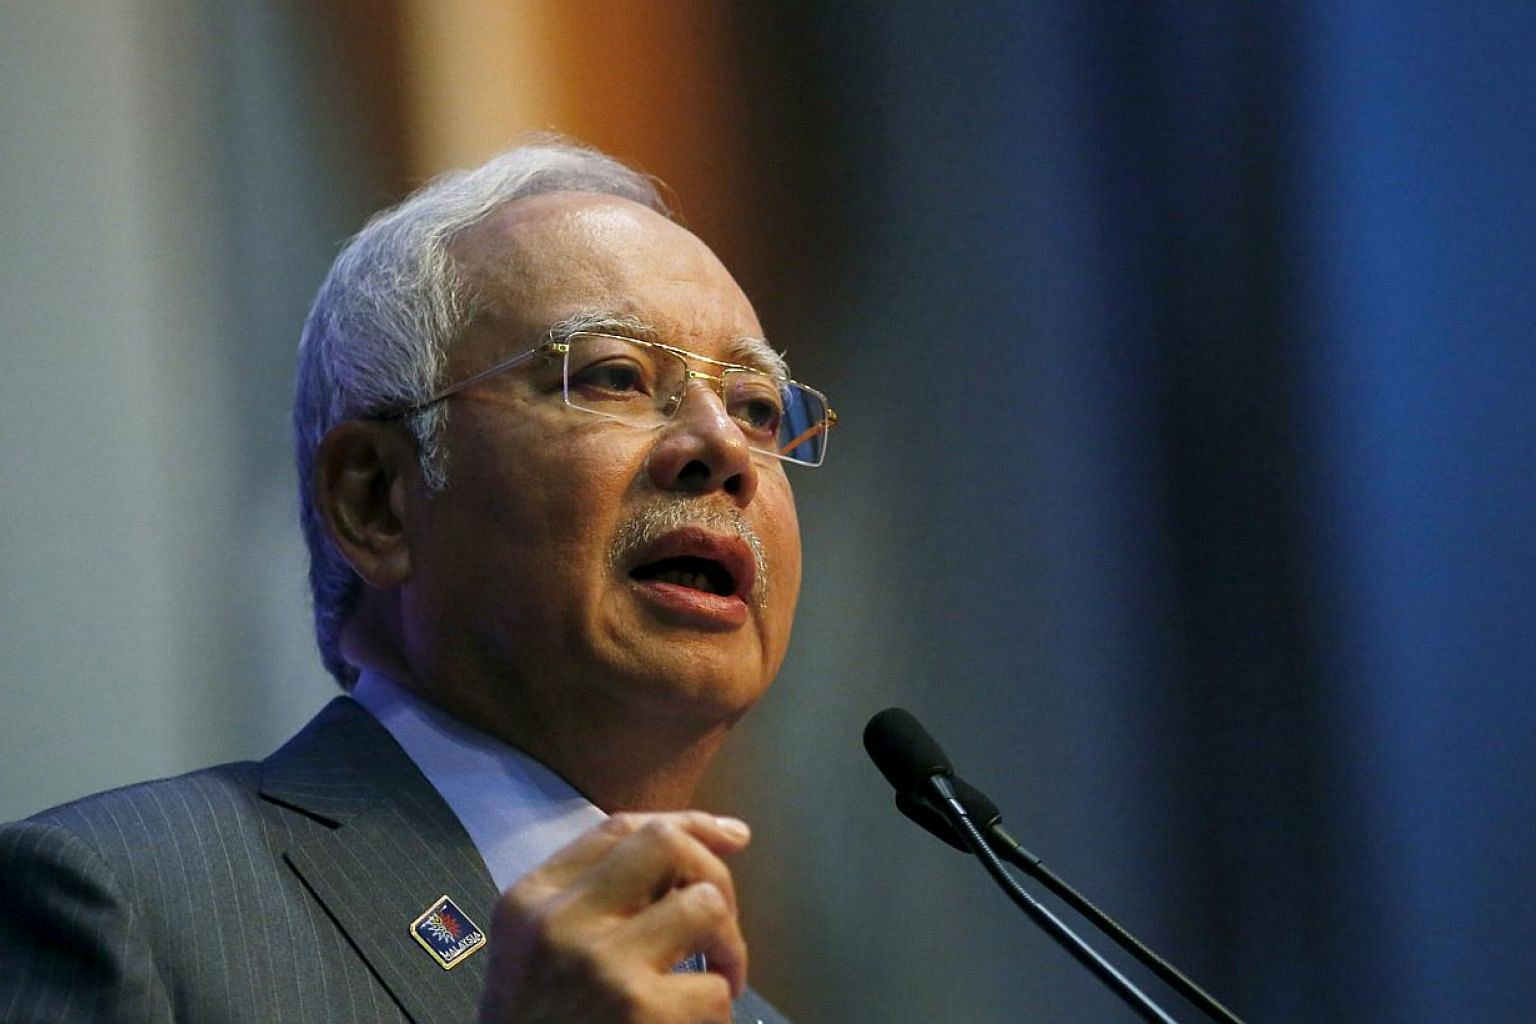 Malaysian Prime Minister Najib Razak said on Wednesday, May 20, 2015, that the remaining US$1.1 billion (S$1.47 billion) that state investor 1MDB redeemed from its offshore account in the Cayman islands into a Singaporean bank was in United States do